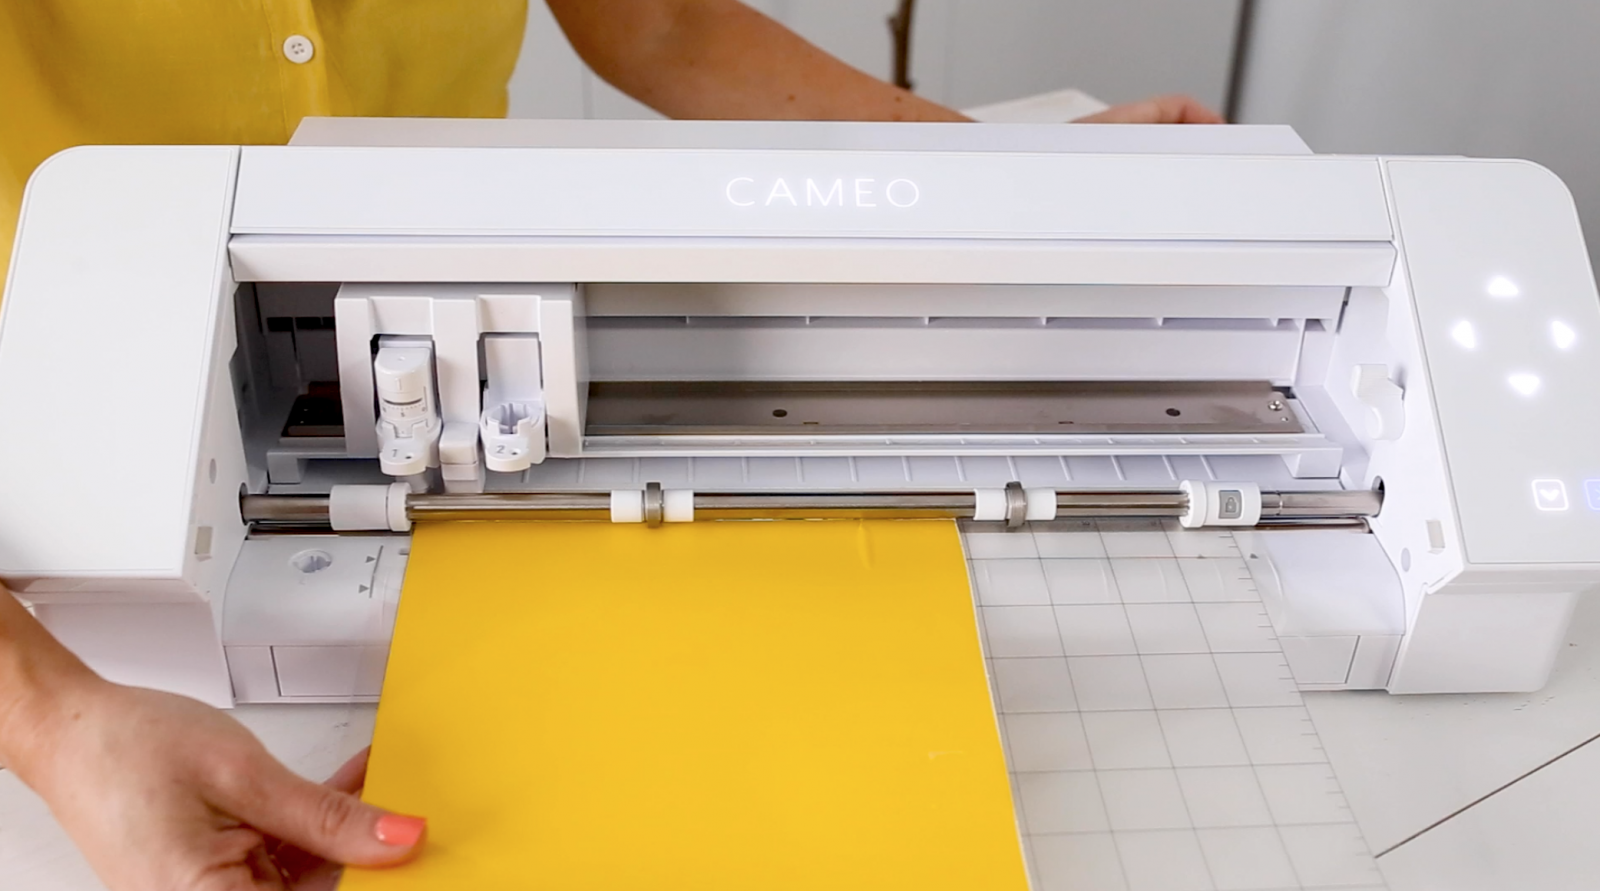 How to Cut with the Silhouette CAMEO 4: A Step by Step Guide